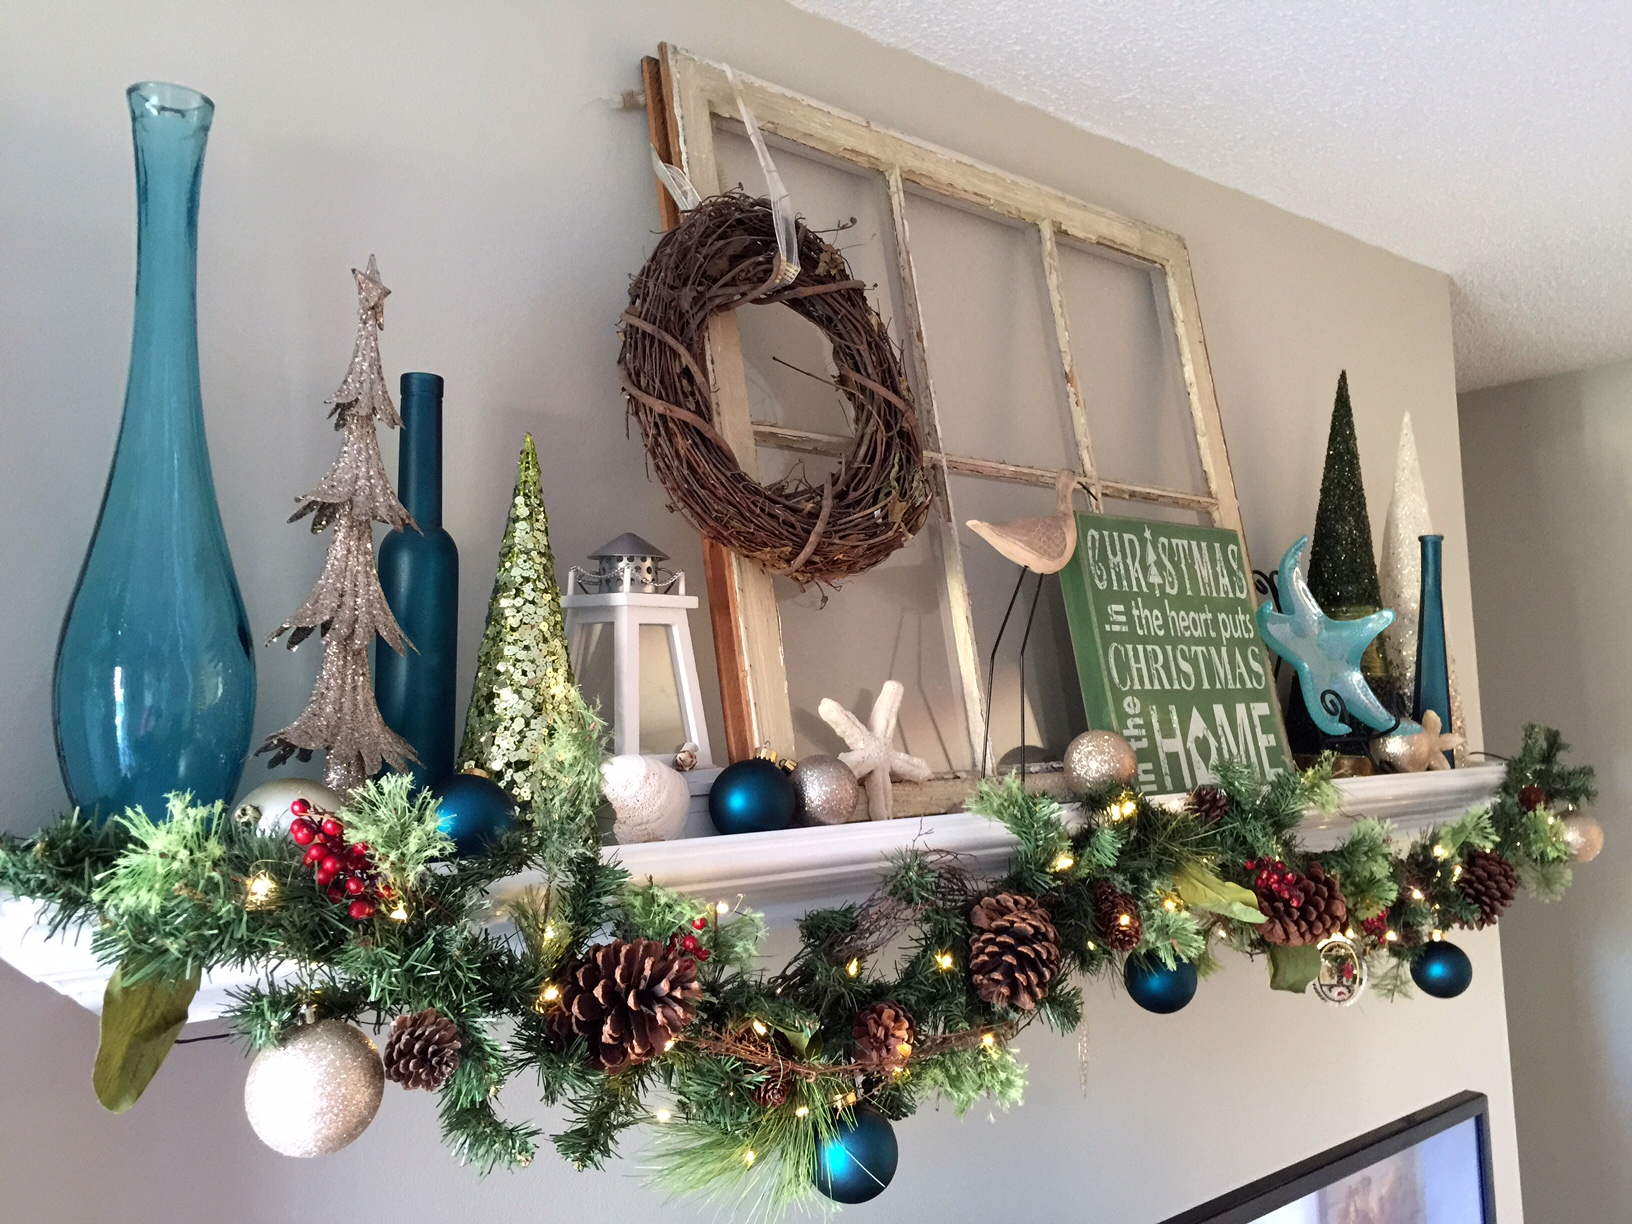 My 2015 Holiday Mantle - Decorative holiday garland with mini lights, teal and champagne colored ornaments in addition to DIY salt dough starfish for a seaside inspired holiday decor.